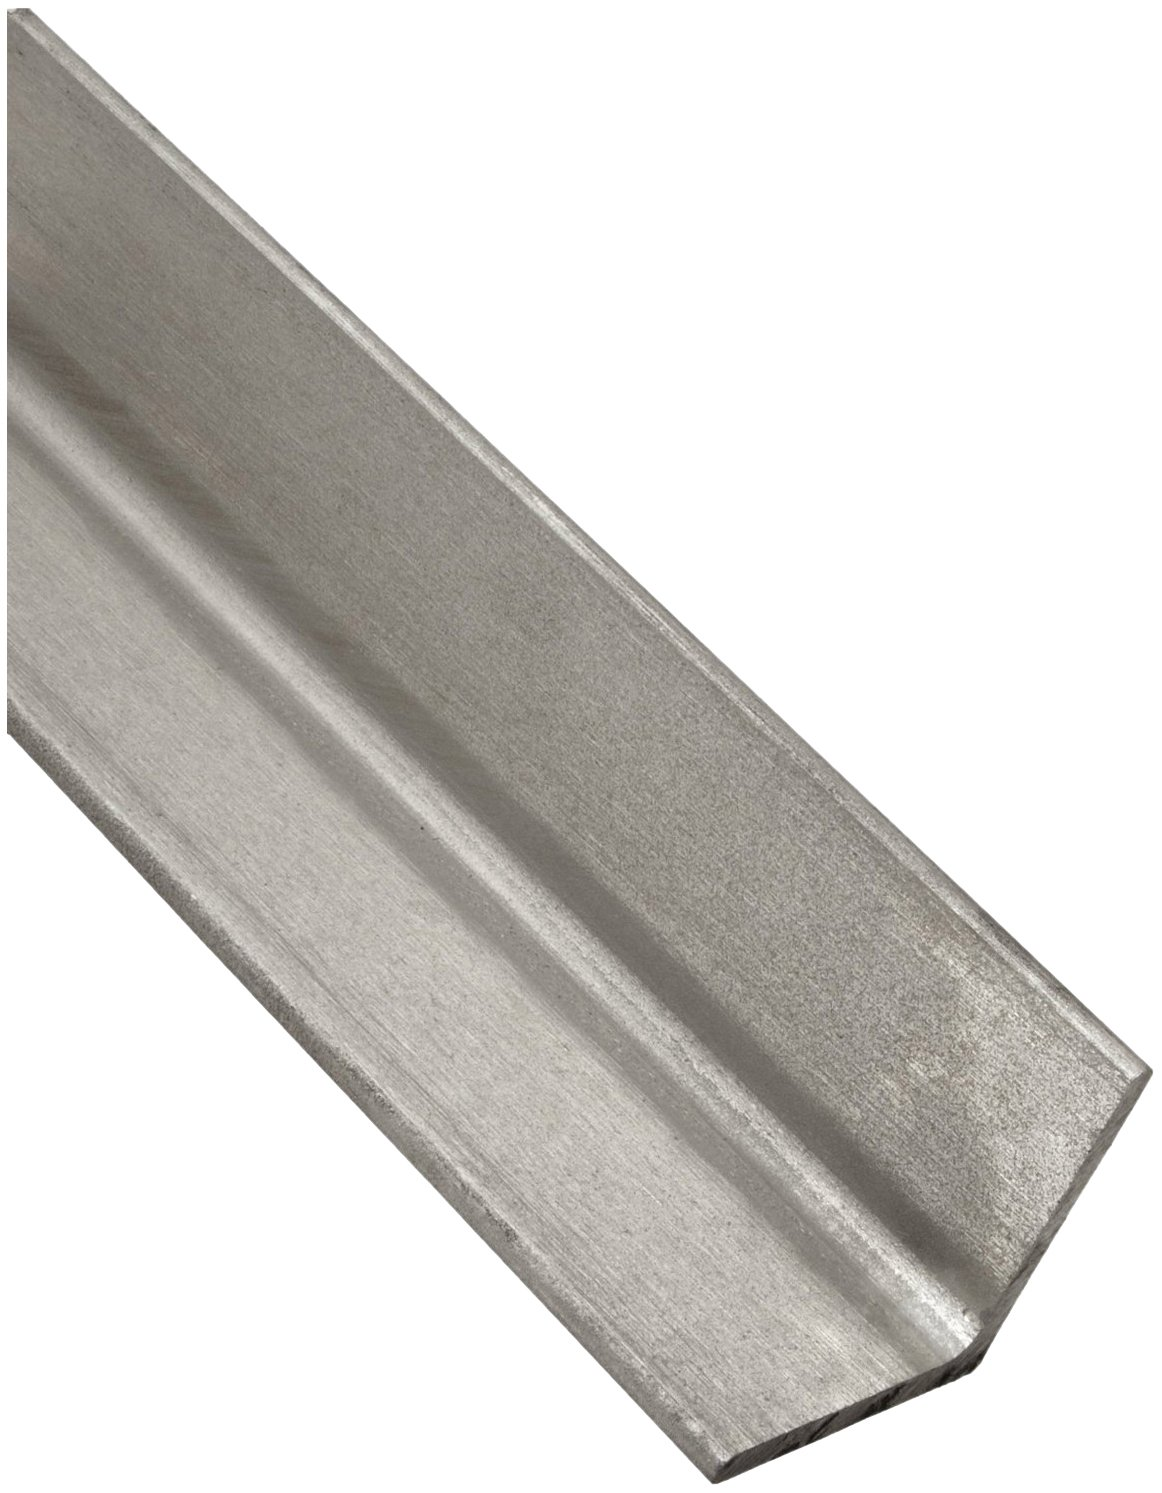 Rounded Corners Unpolished 304 Stainless Steel Angle Annealed ASTM A276 3//16 Wall Thickness Mill 3 Leg Lengths Finish Equal Leg Length 60 Length